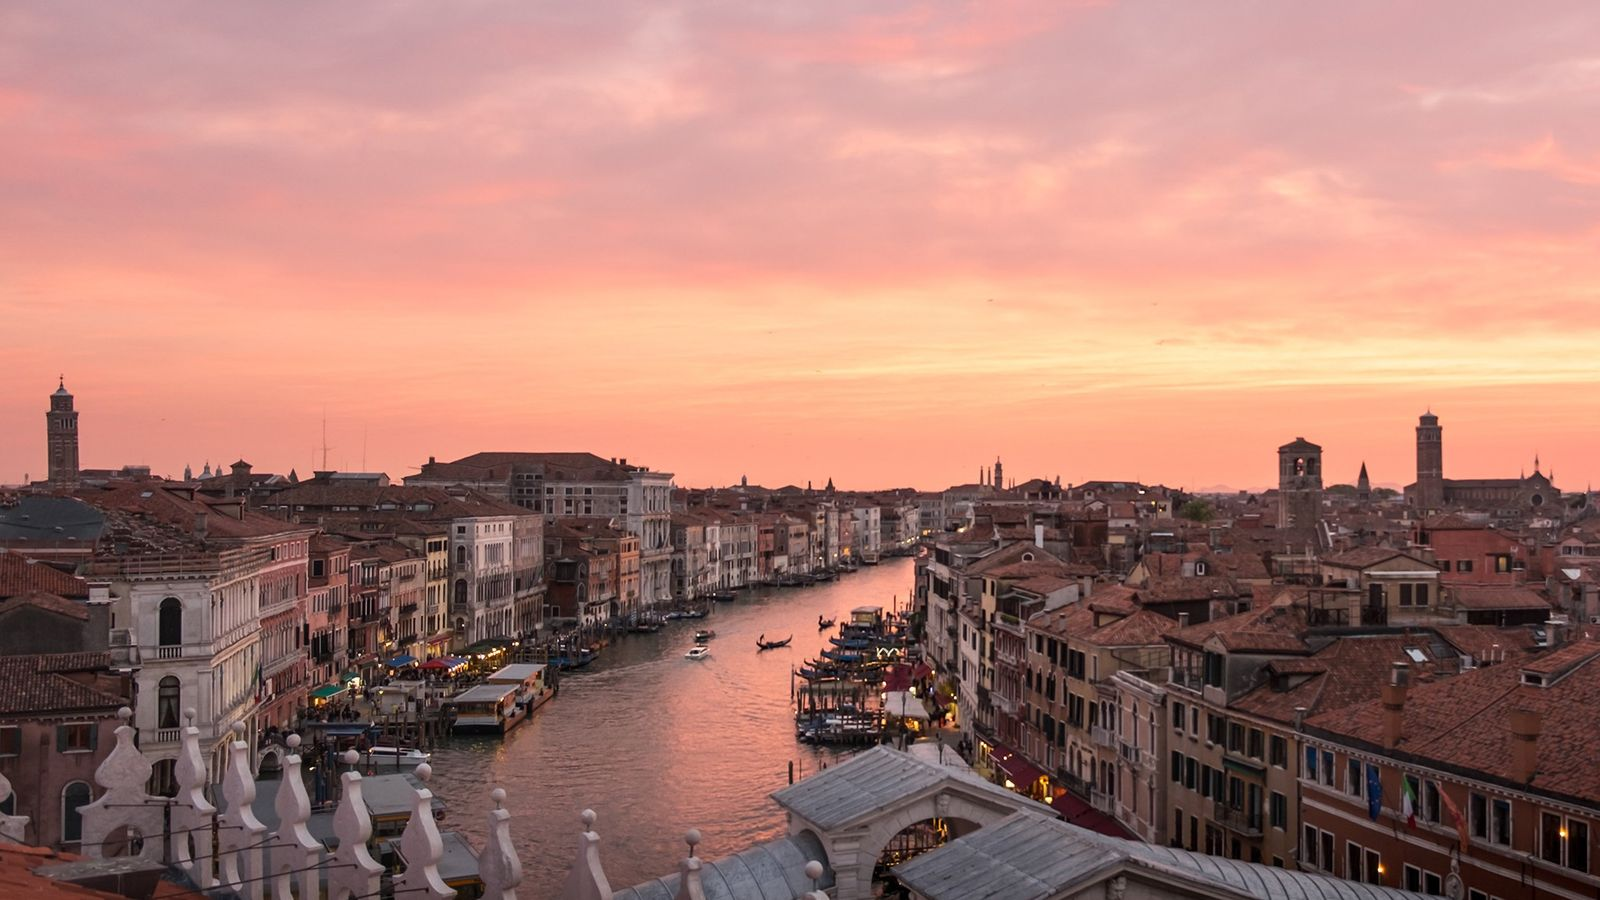 Gondolas cruise down a canal in Venice below a pink-painted sky.